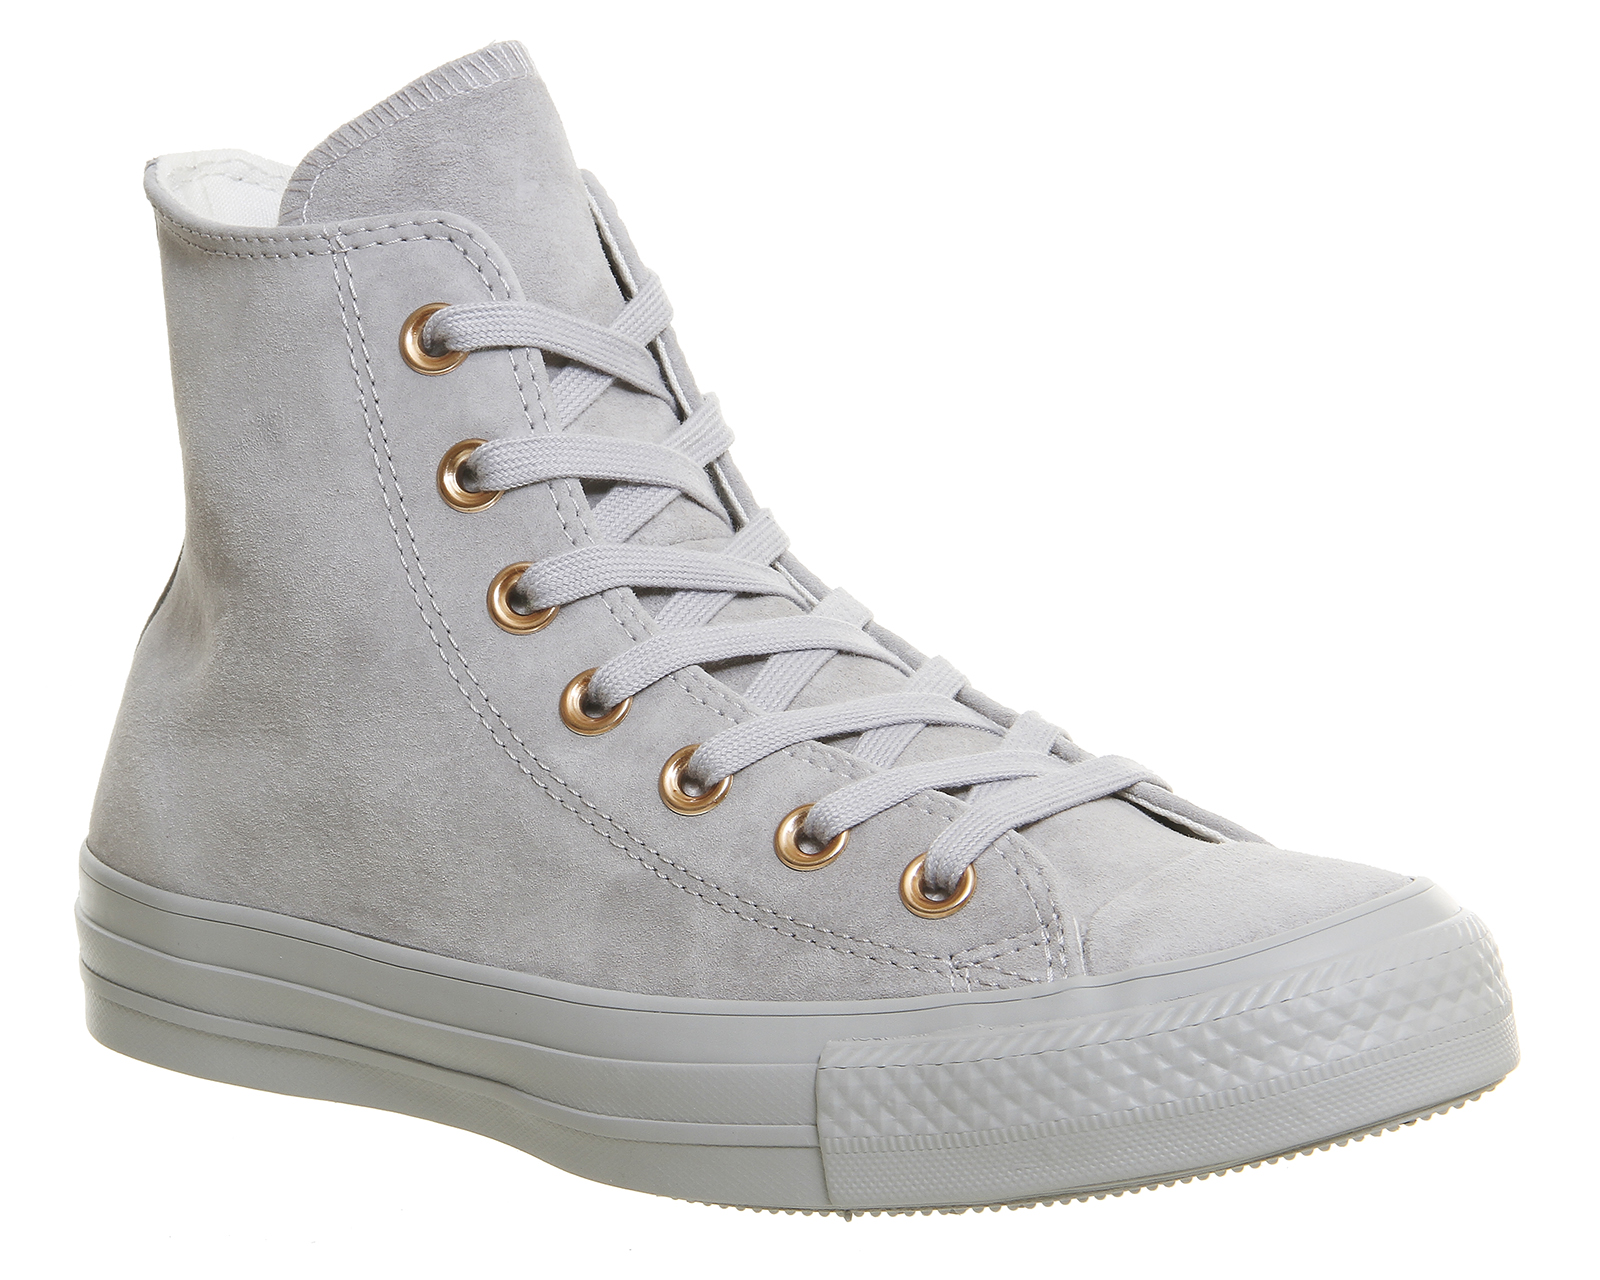 030ce48bd05a Details about Womens Converse All Star Hi Leather ASH GREY ROSE GOLD  Trainers Shoes